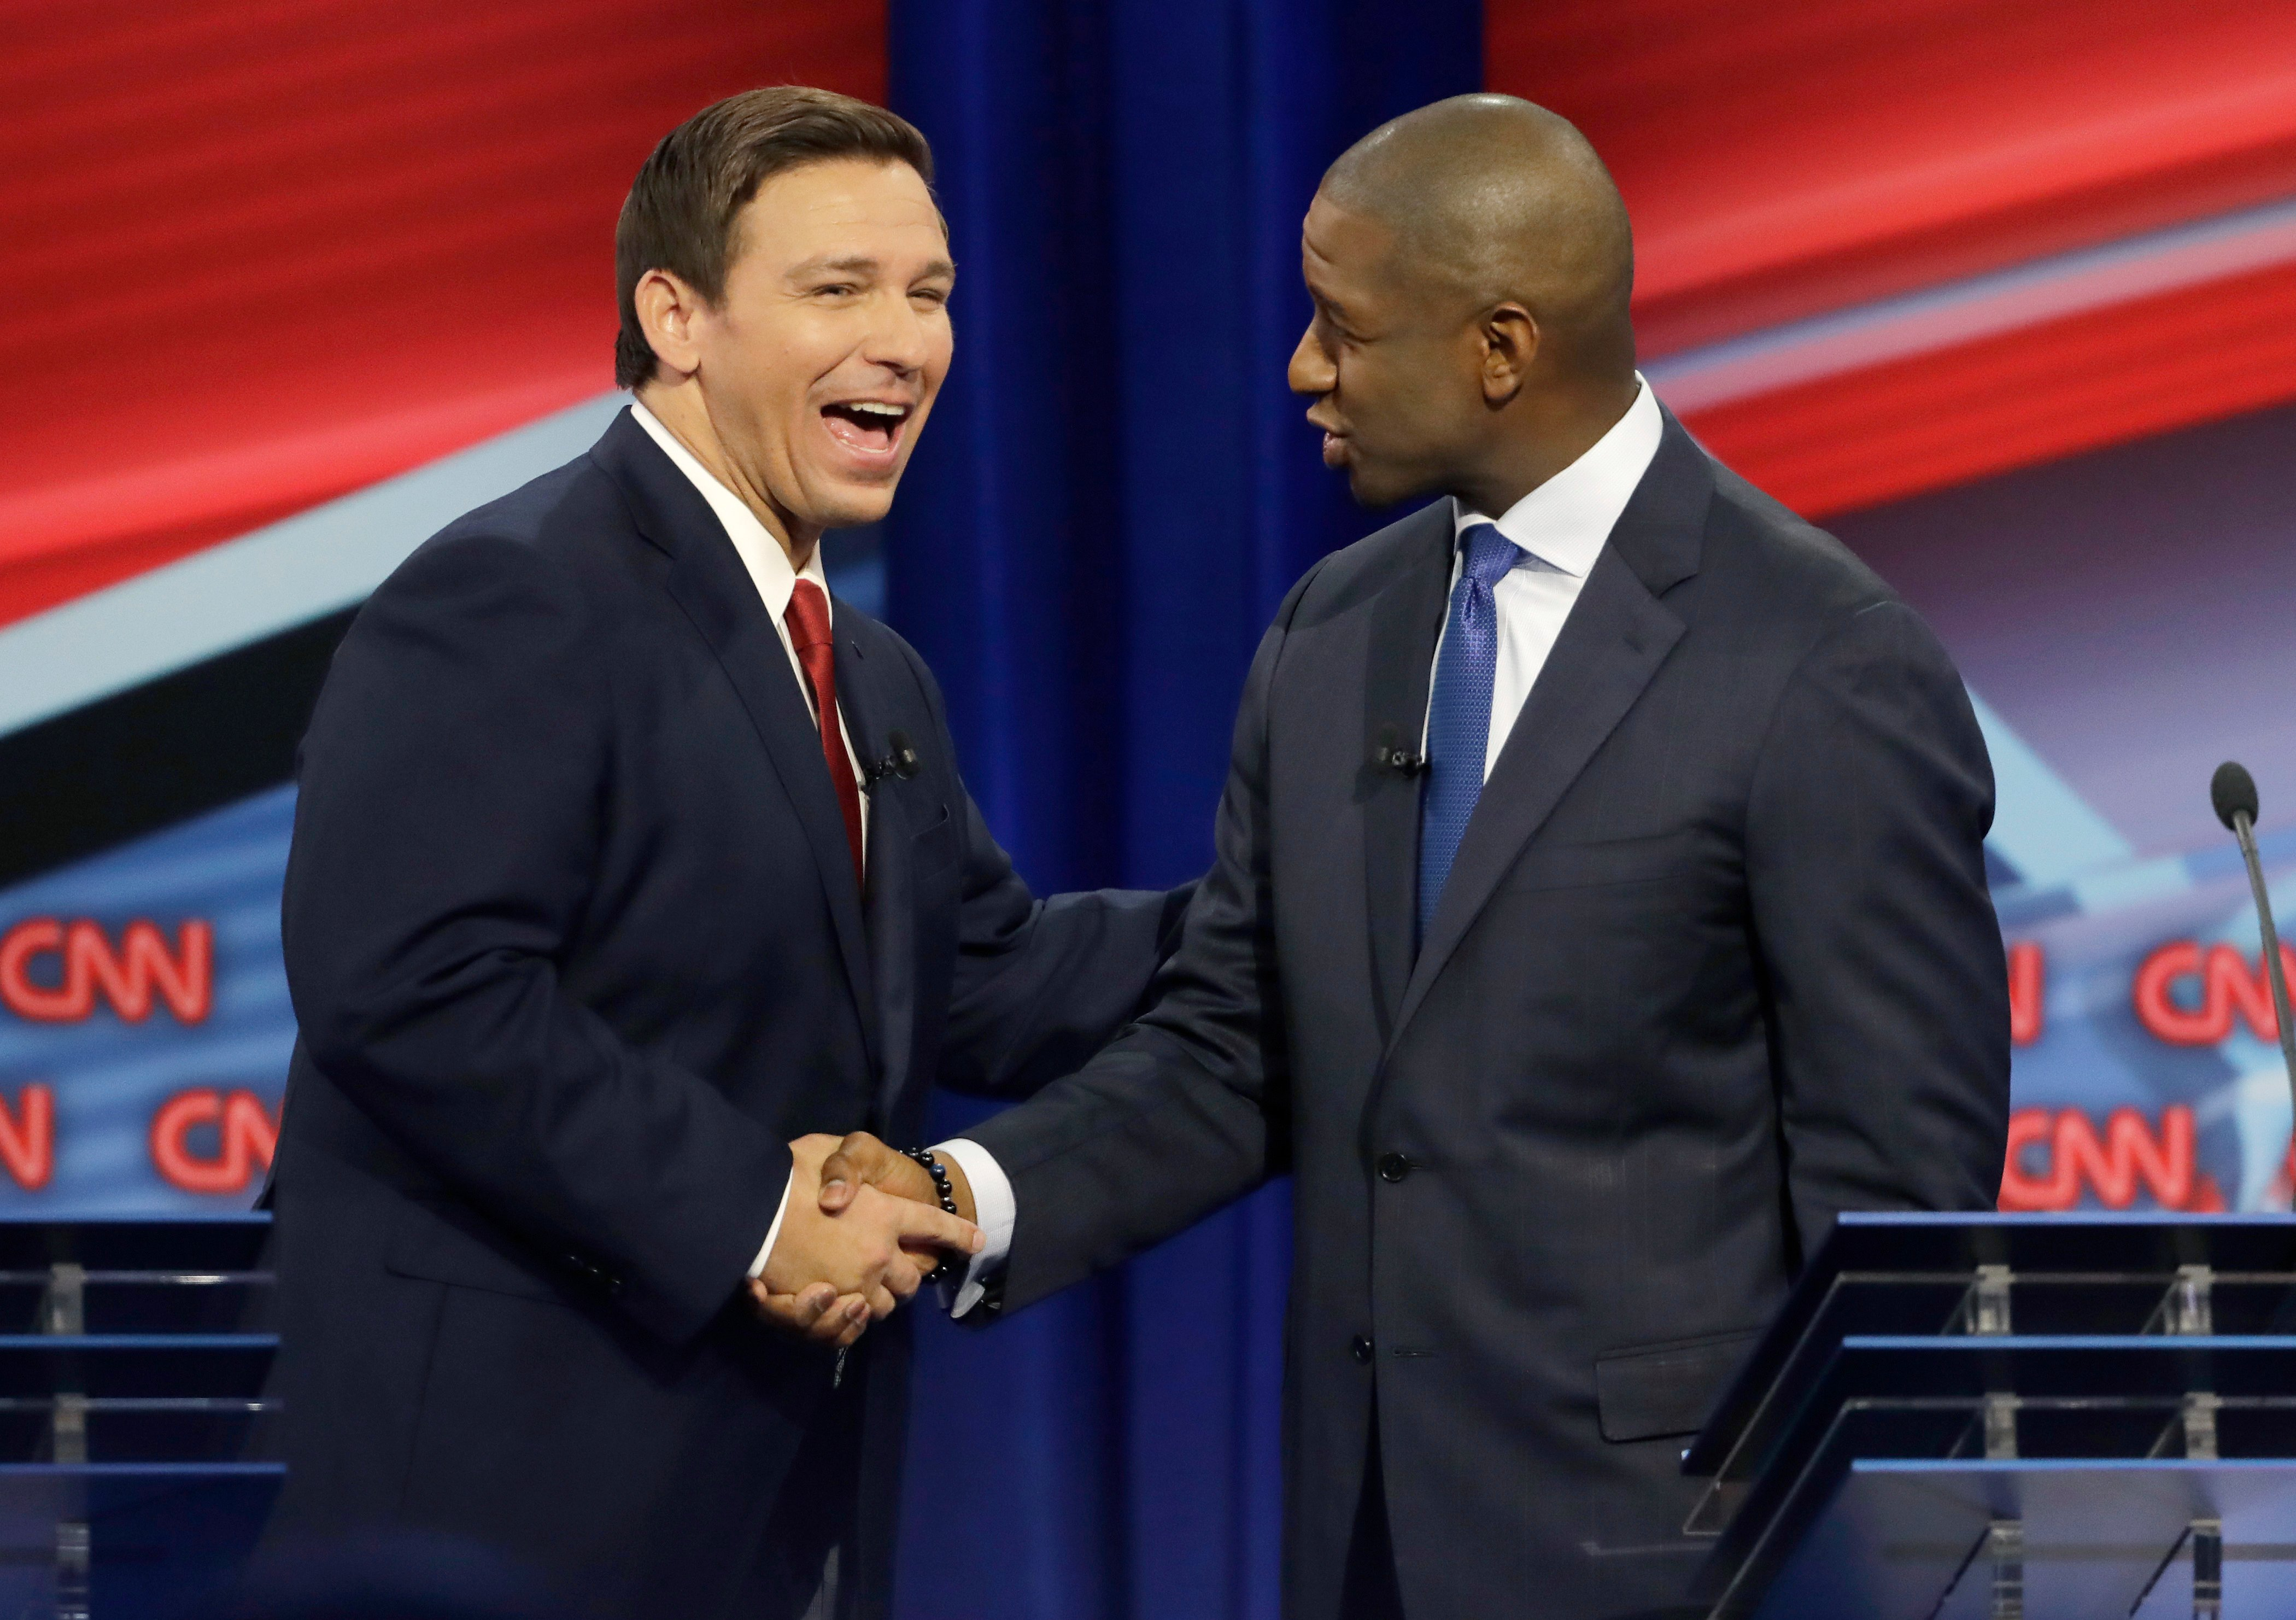 TAMPA, FLORIDA - OCTOBER 21: Florida Republican gubernatorial candidate Ron DeSantis, left, shakes hands with Democratic gubernatorial candidate Andrew Gillum after a CNN debate, Sunday, Oct. 21, 2018, in Tampa, Fla. (Photo by Chris O'Meara-Pool/Getty Images)